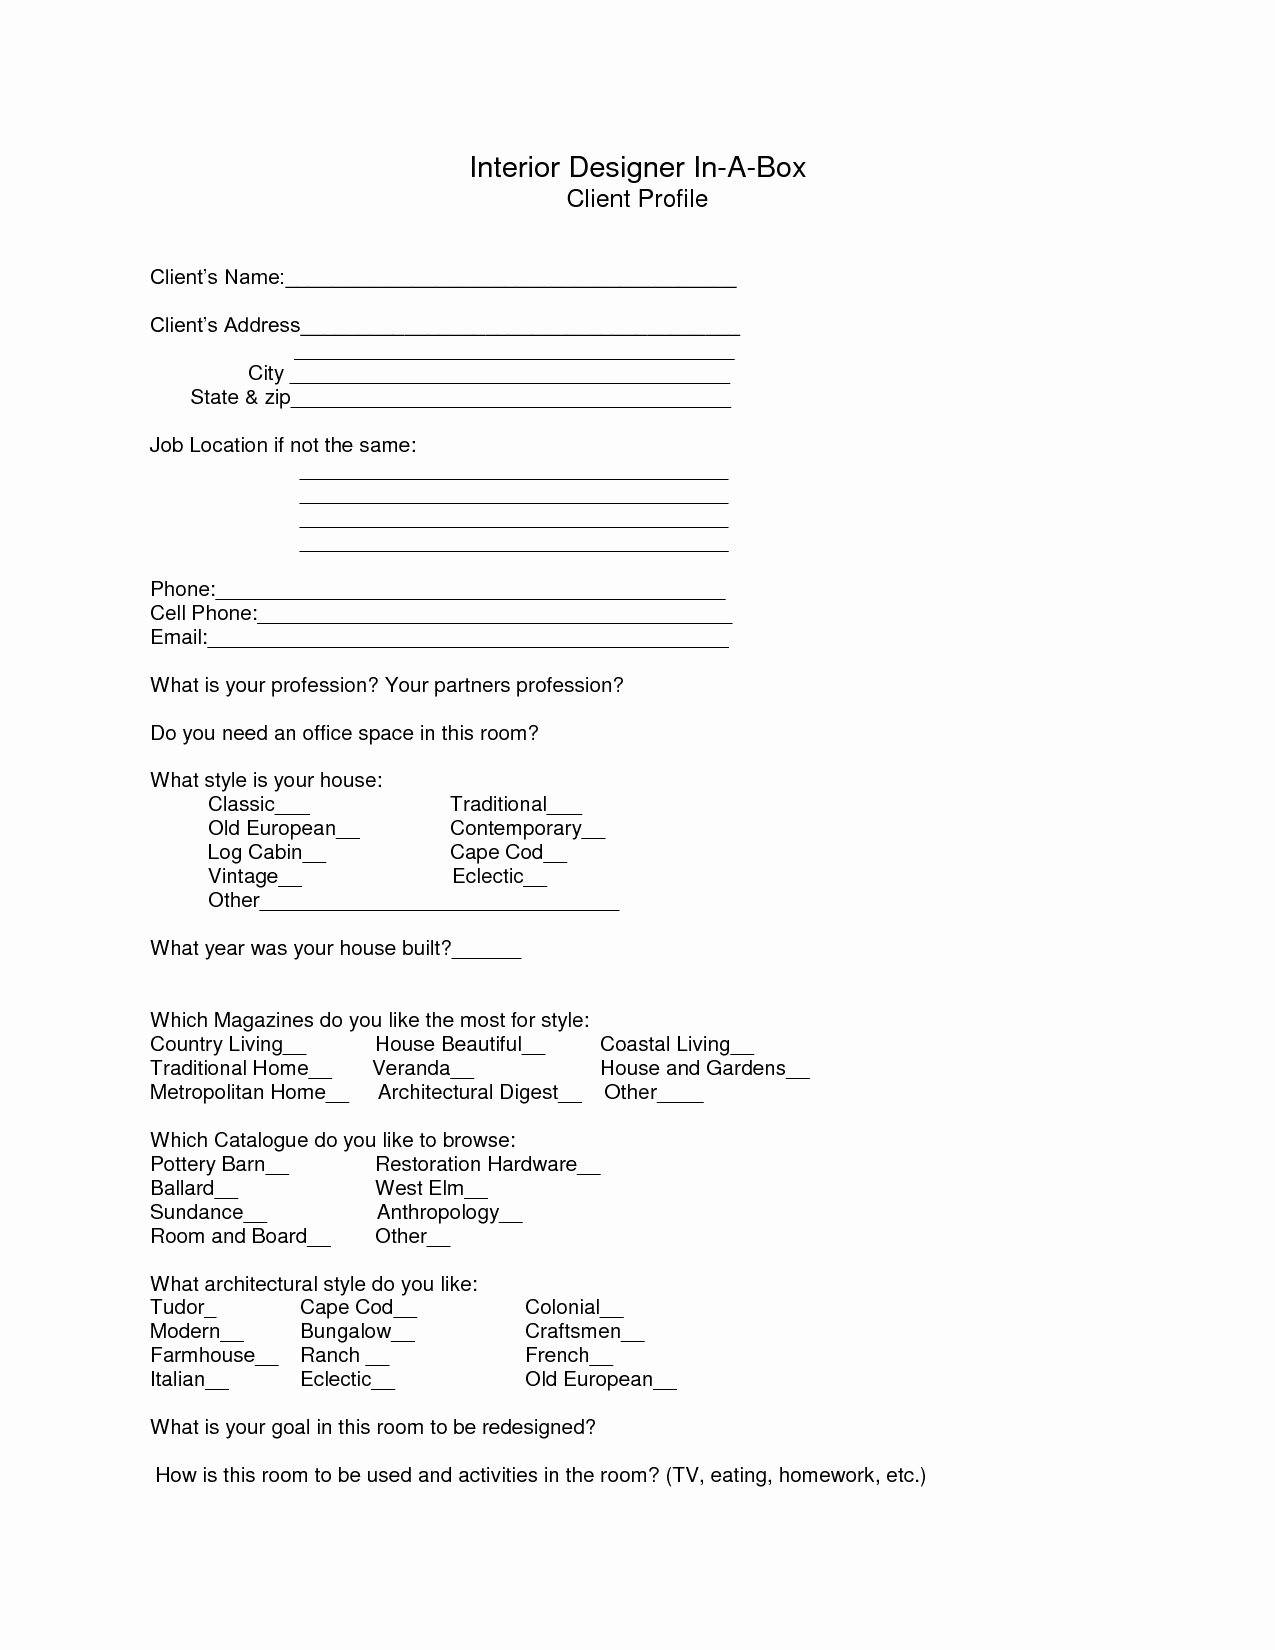 Customer Profile form Awesome Client Profile Template for Interior Design Yahoo Image